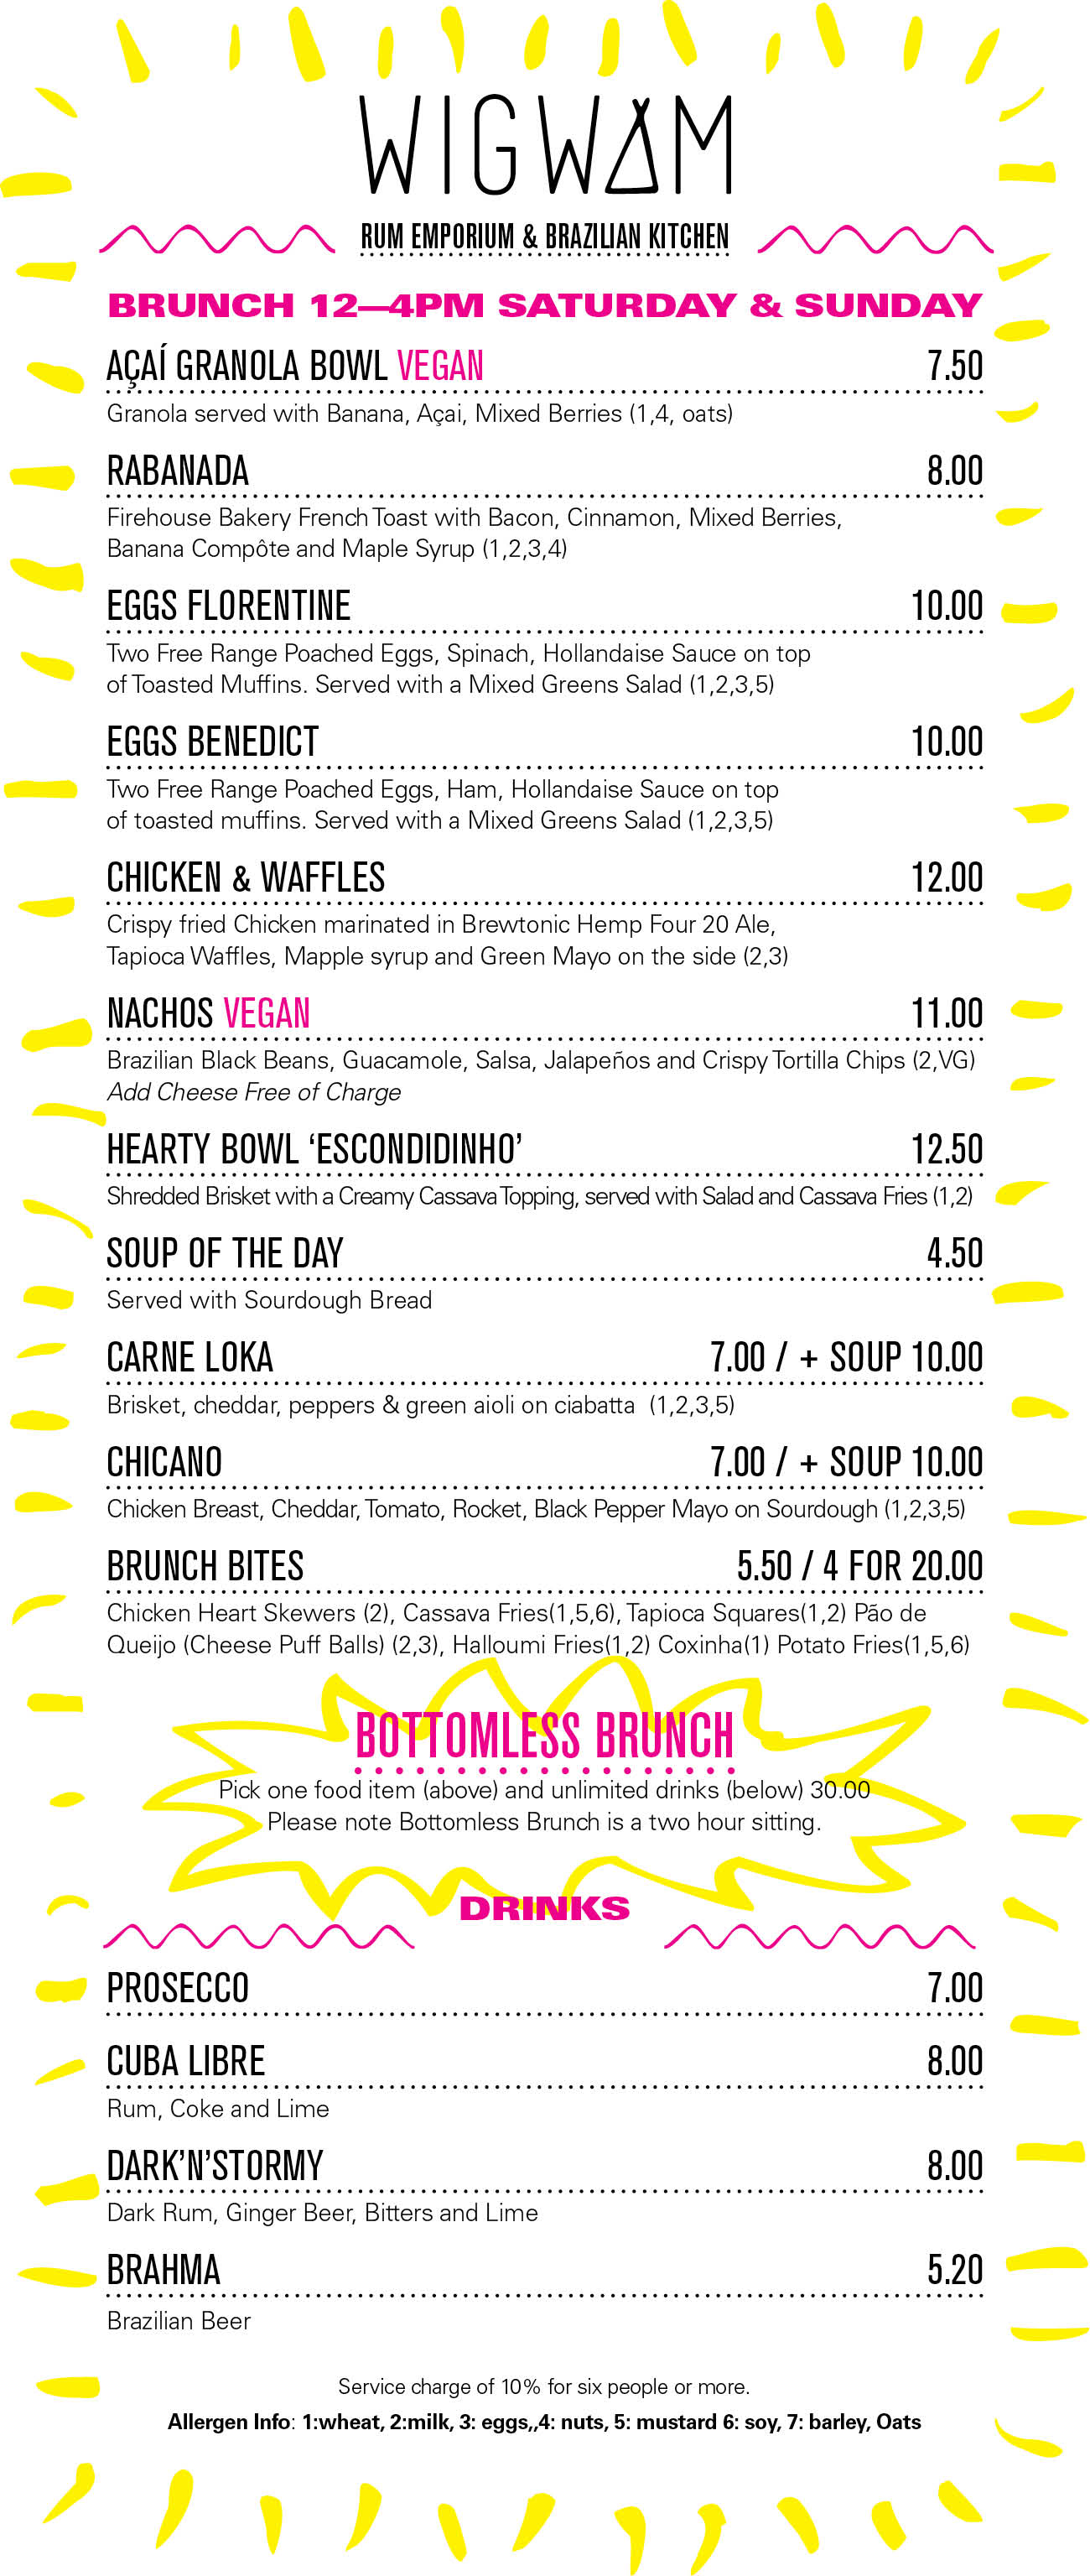 Wigwam Bottomless Brunch Menu